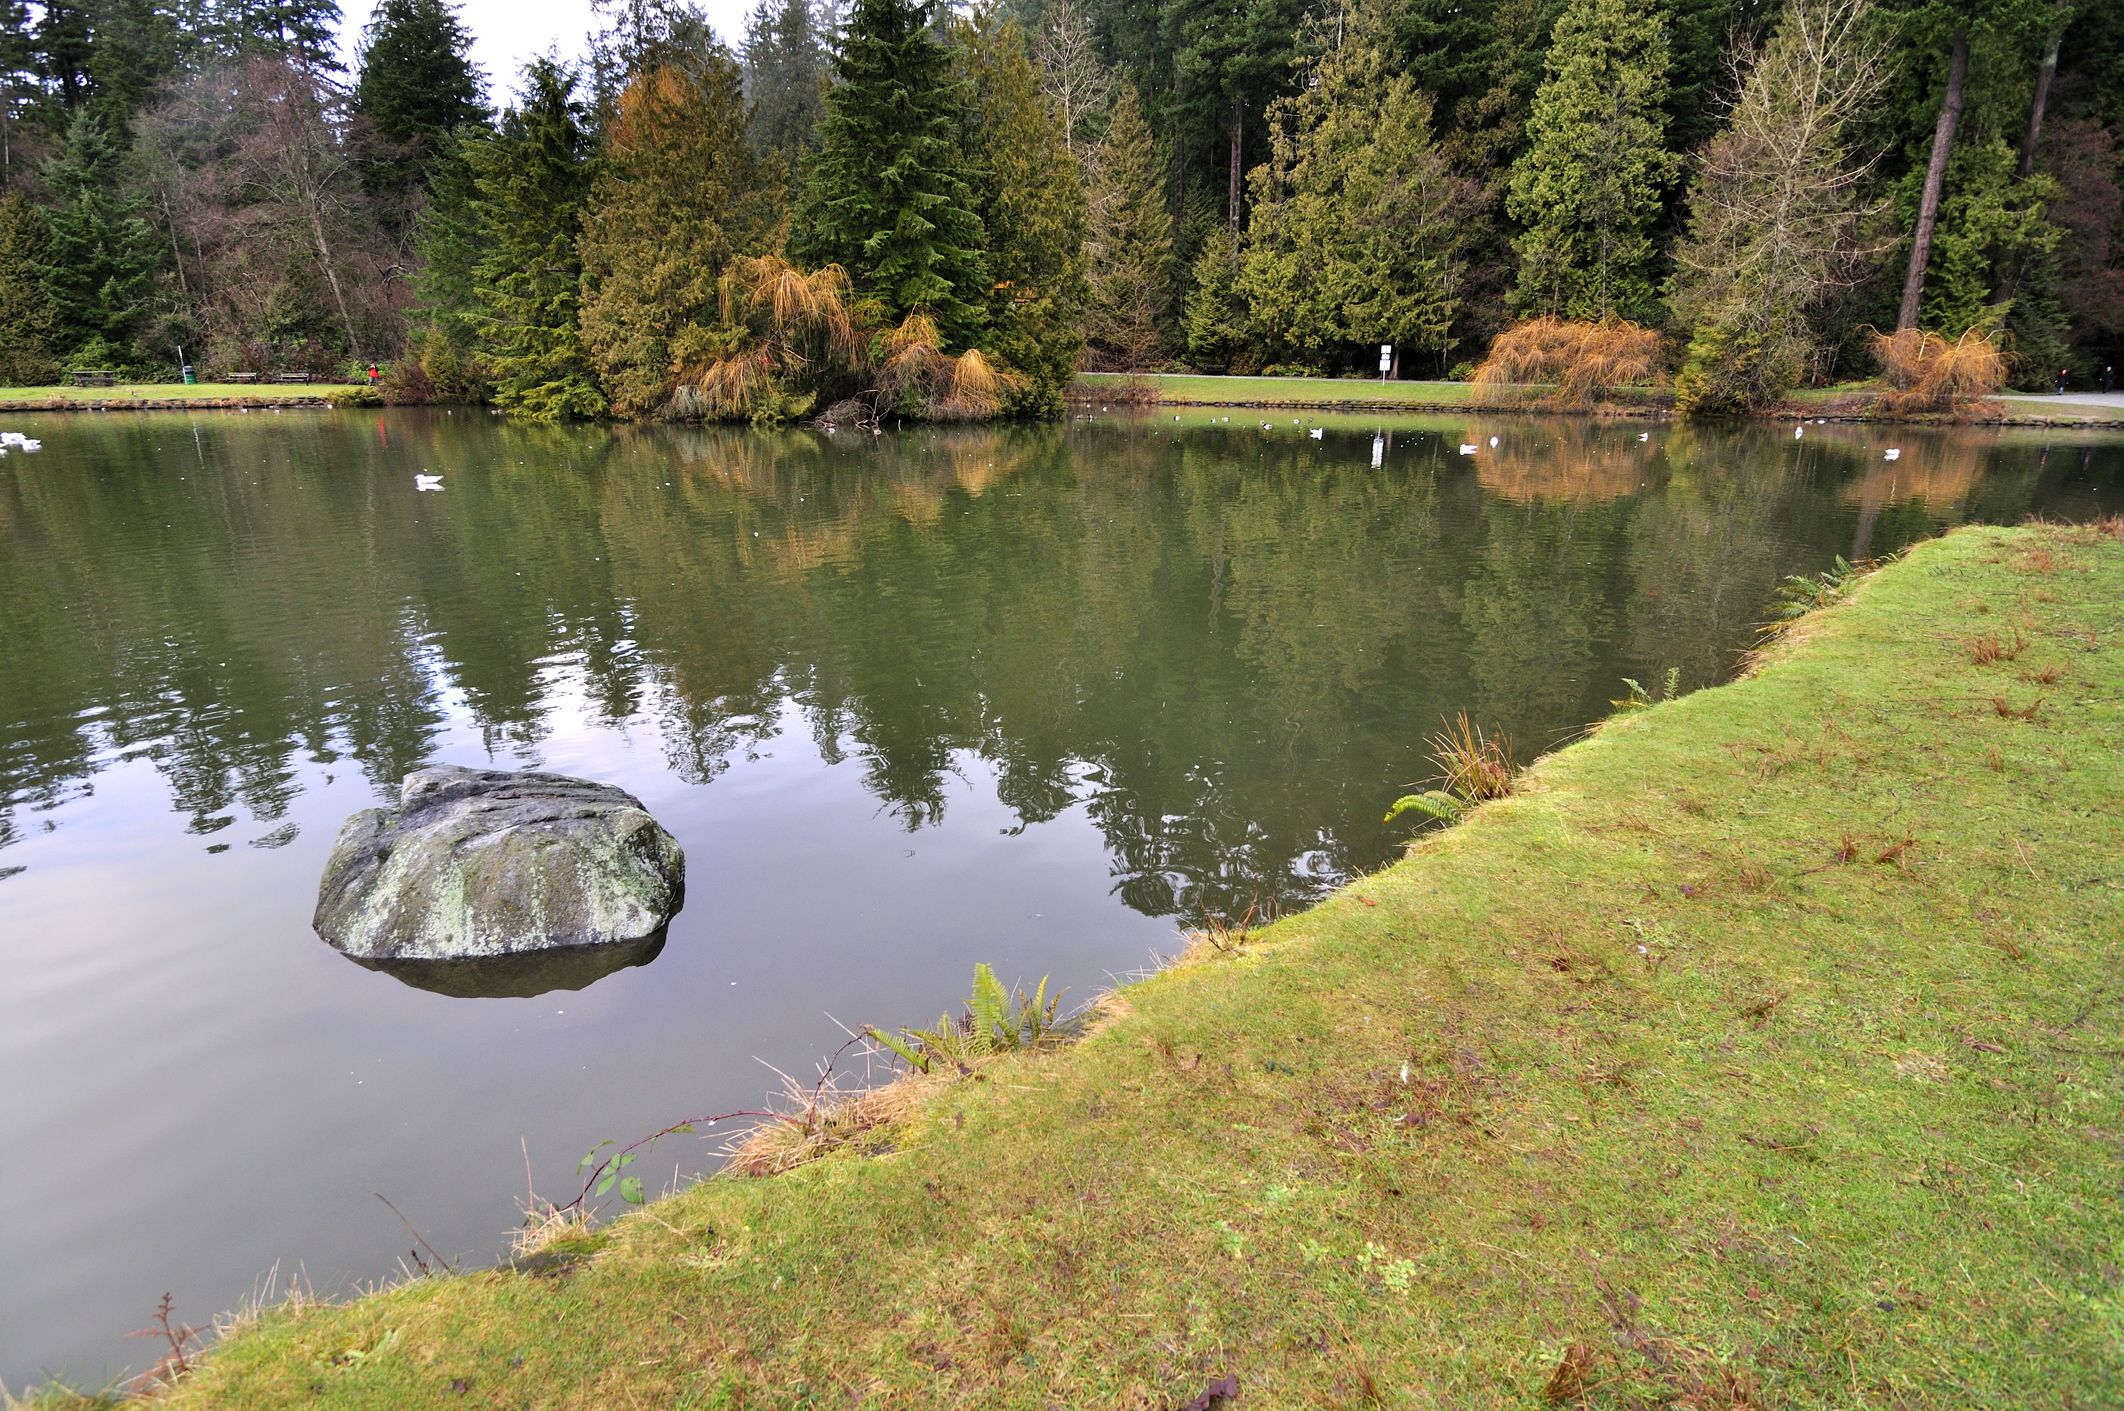 Lake in Central Park, Burnaby, British Columbia